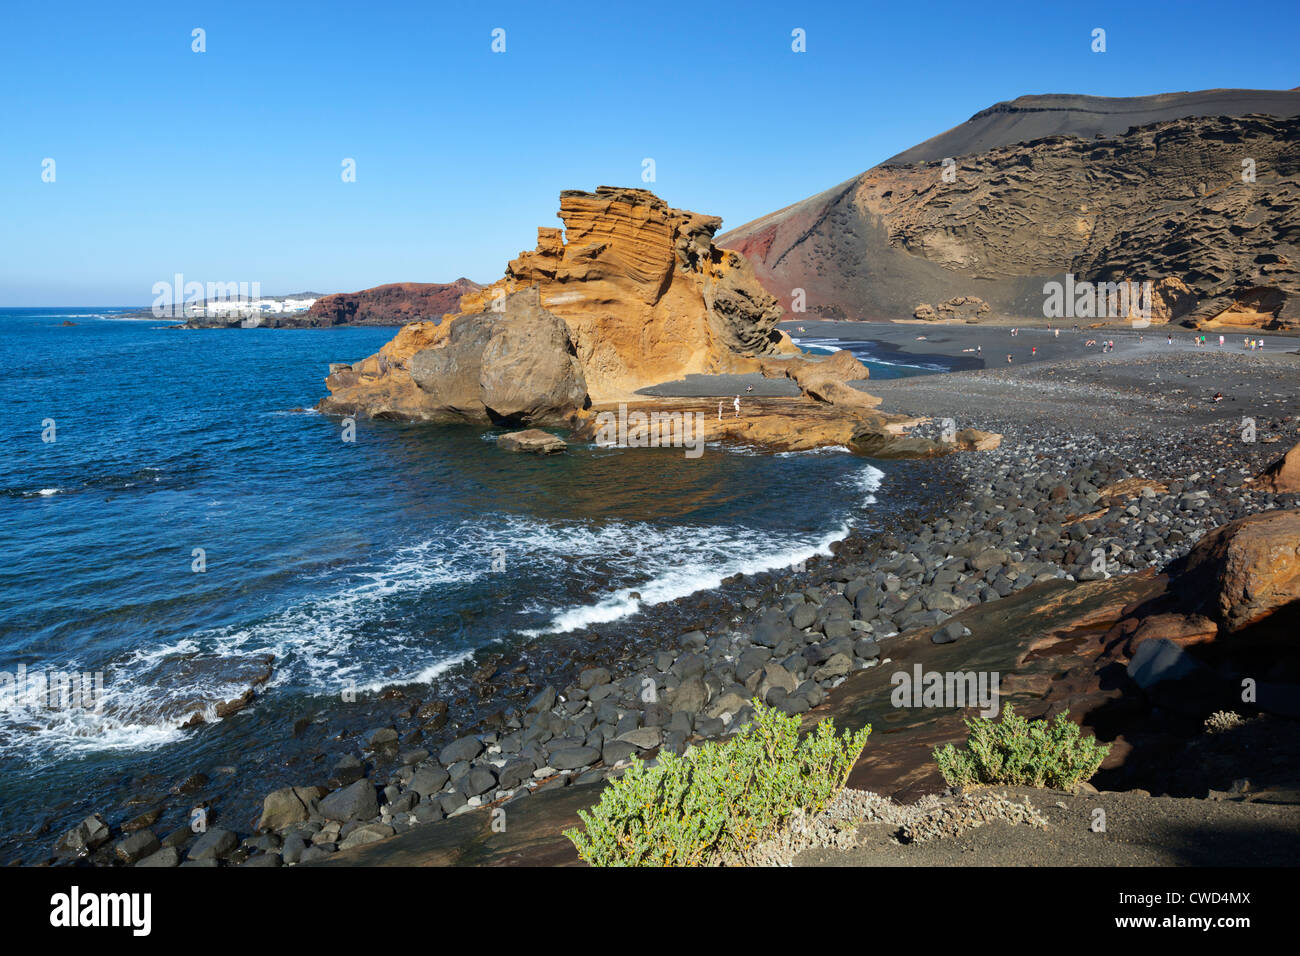 Rocky beach and lava cliffs at El Golfo - Stock Image